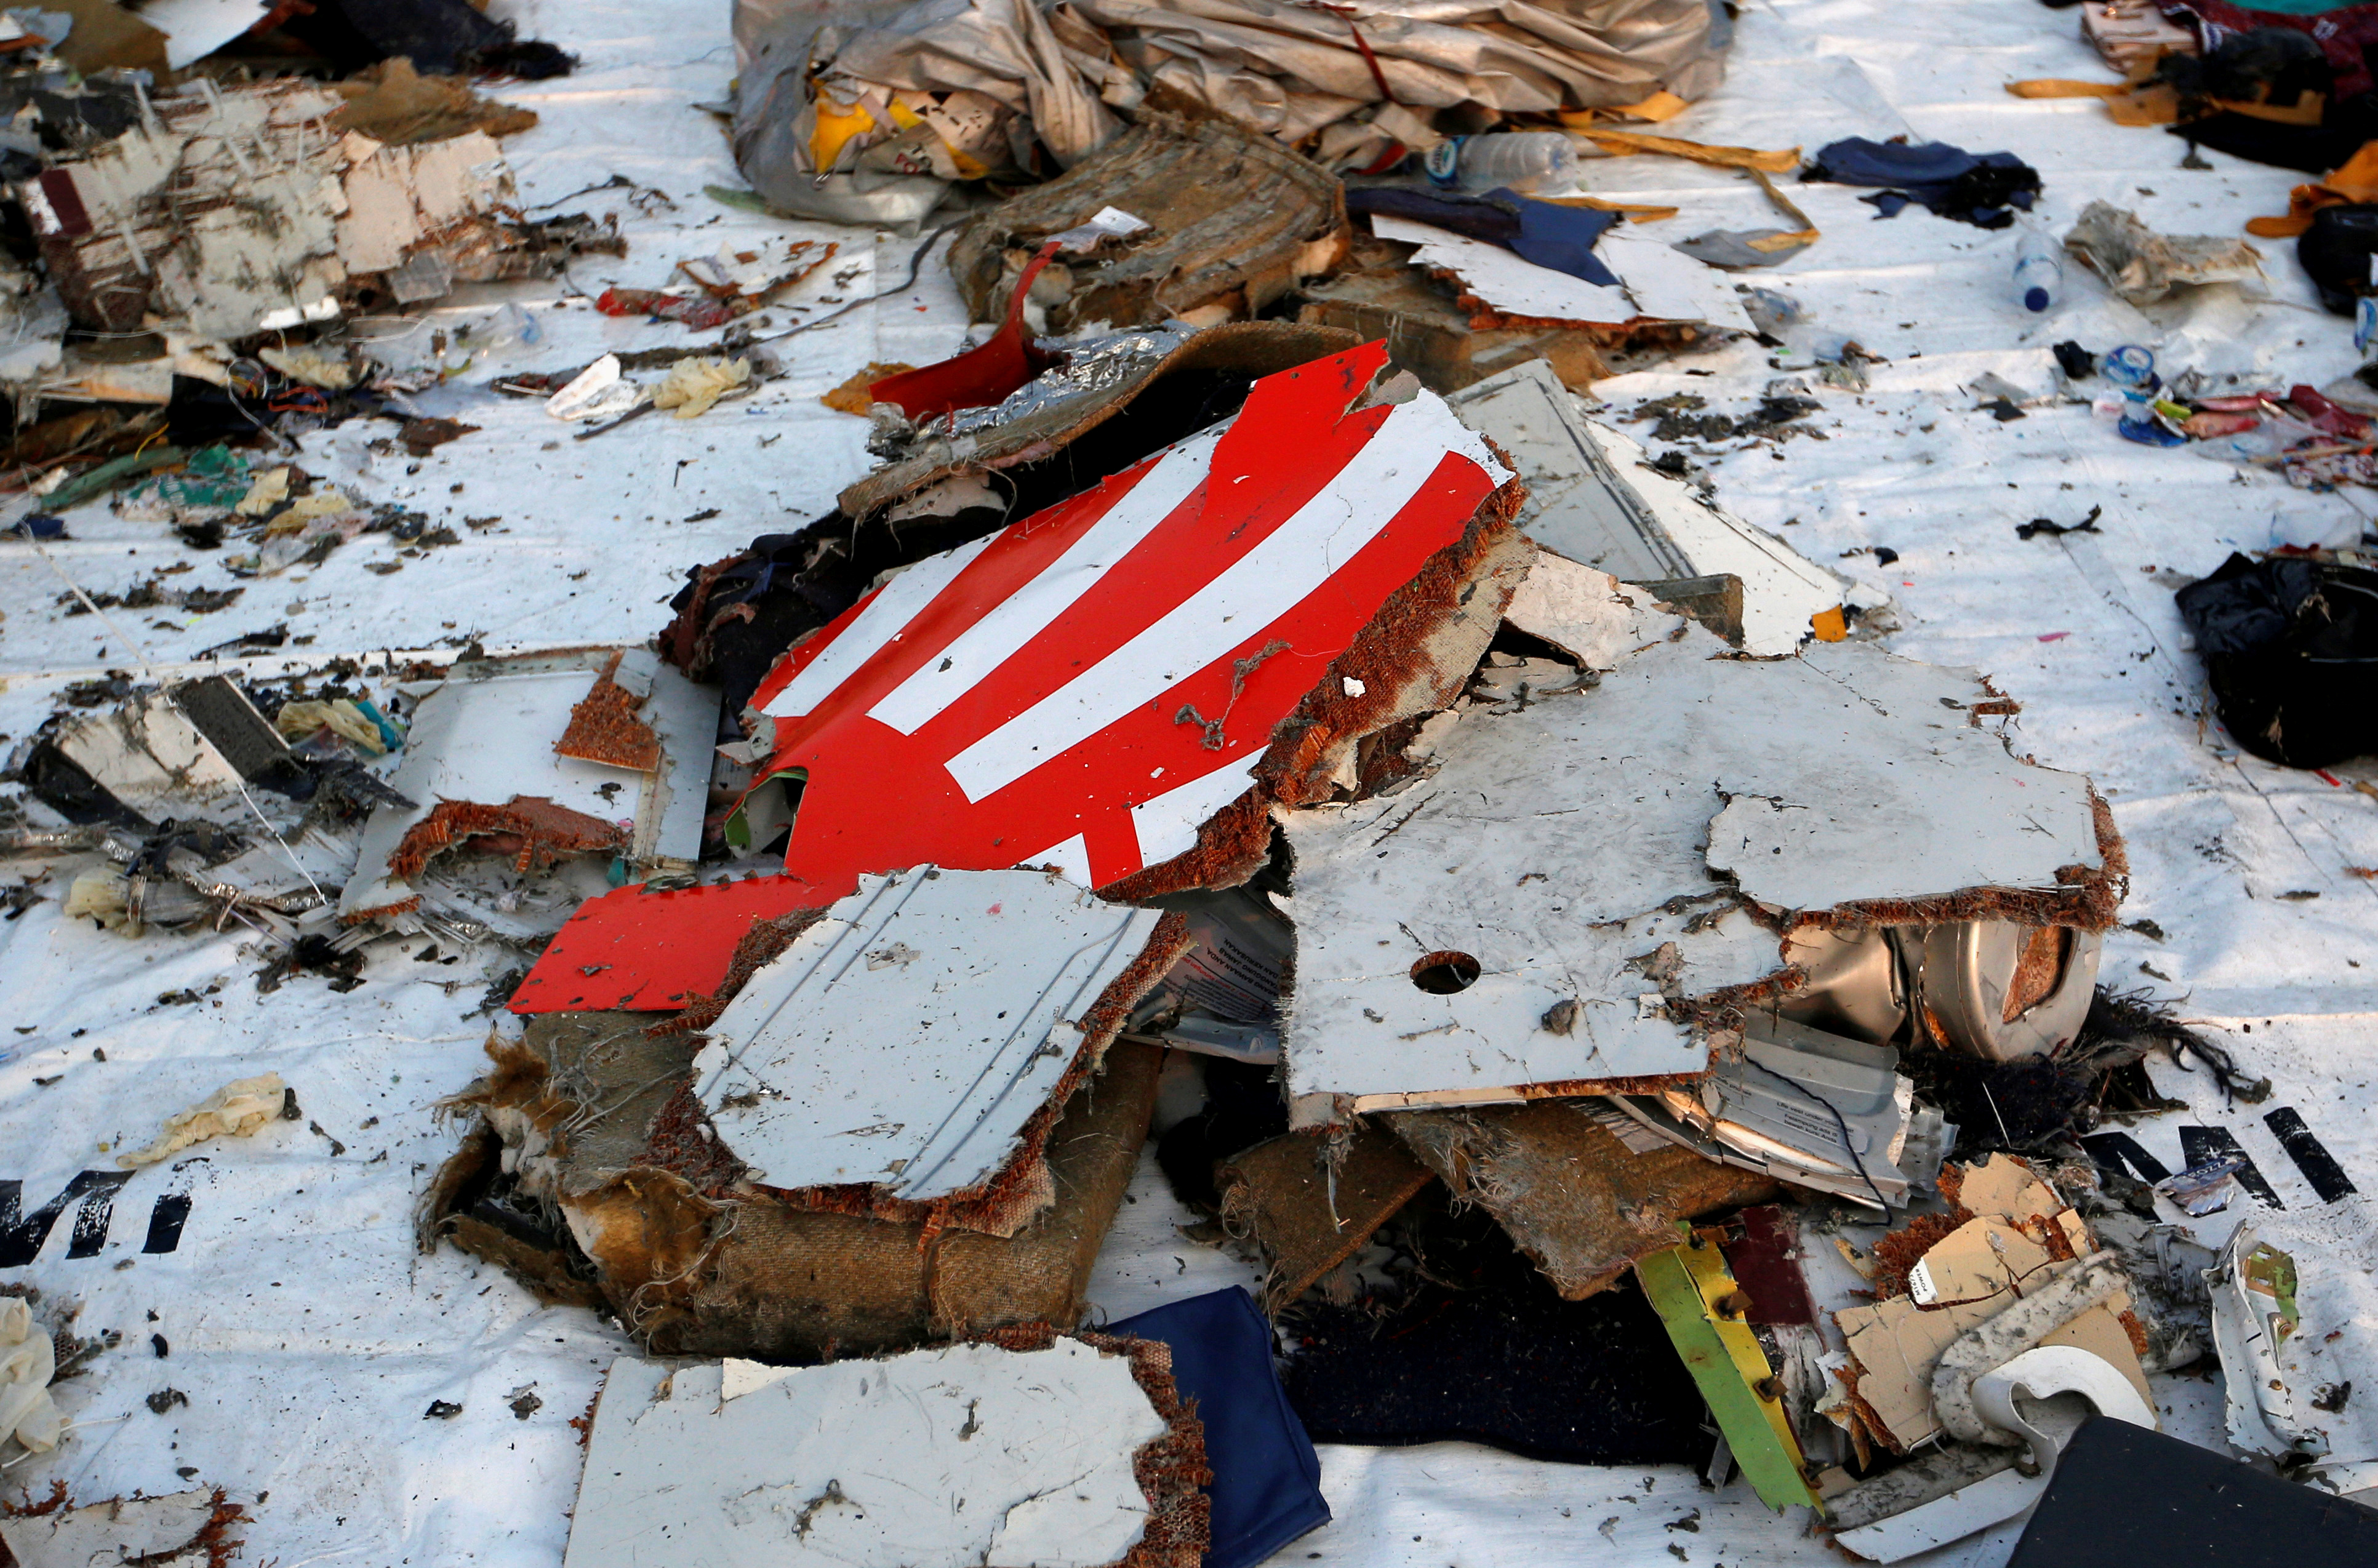 FILE PHOTO - Wreckage recovered from Lion Air flight JT610, that crashed into the sea, lies at Tanjung Priok port in Jakarta, Indonesia, October 29, 2018. REUTERS/Willy Kurniawan/File Photo